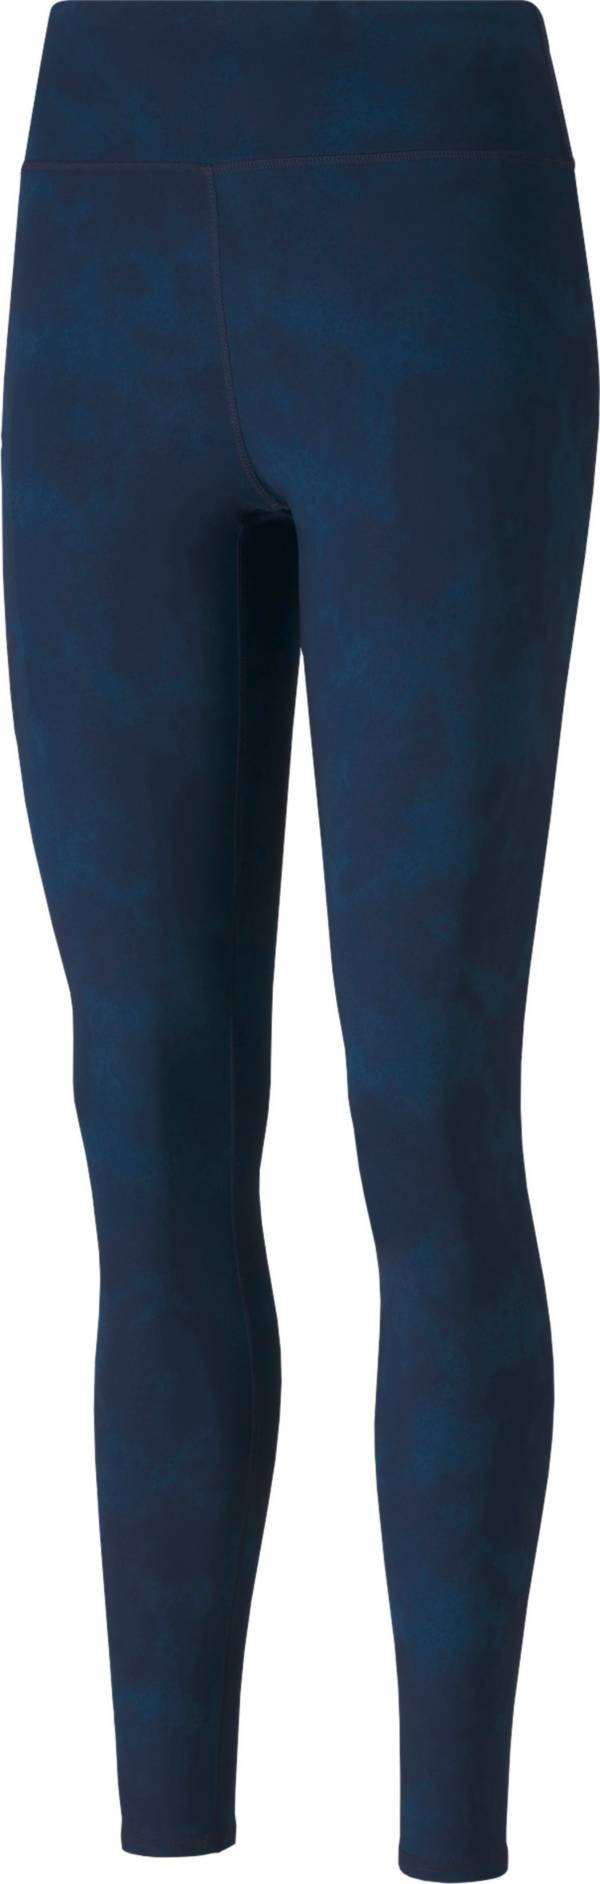 PUMA Women's Floral Dye Tights product image